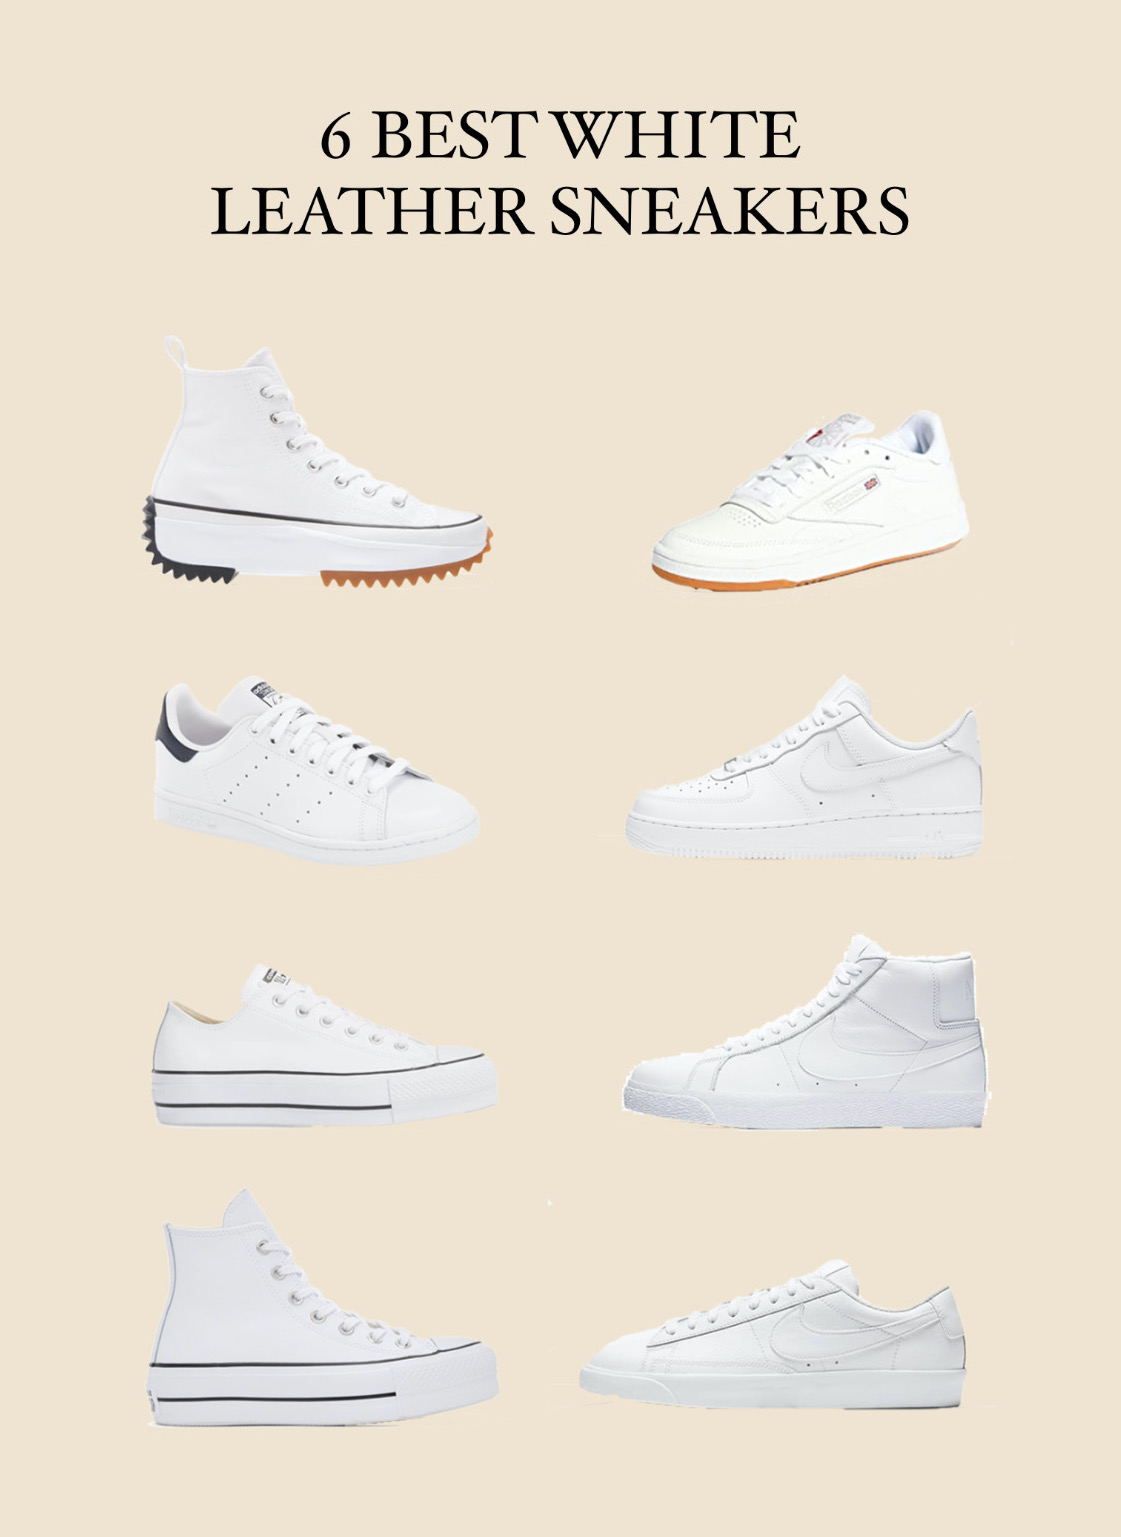 affordable-white-leather-sneakers